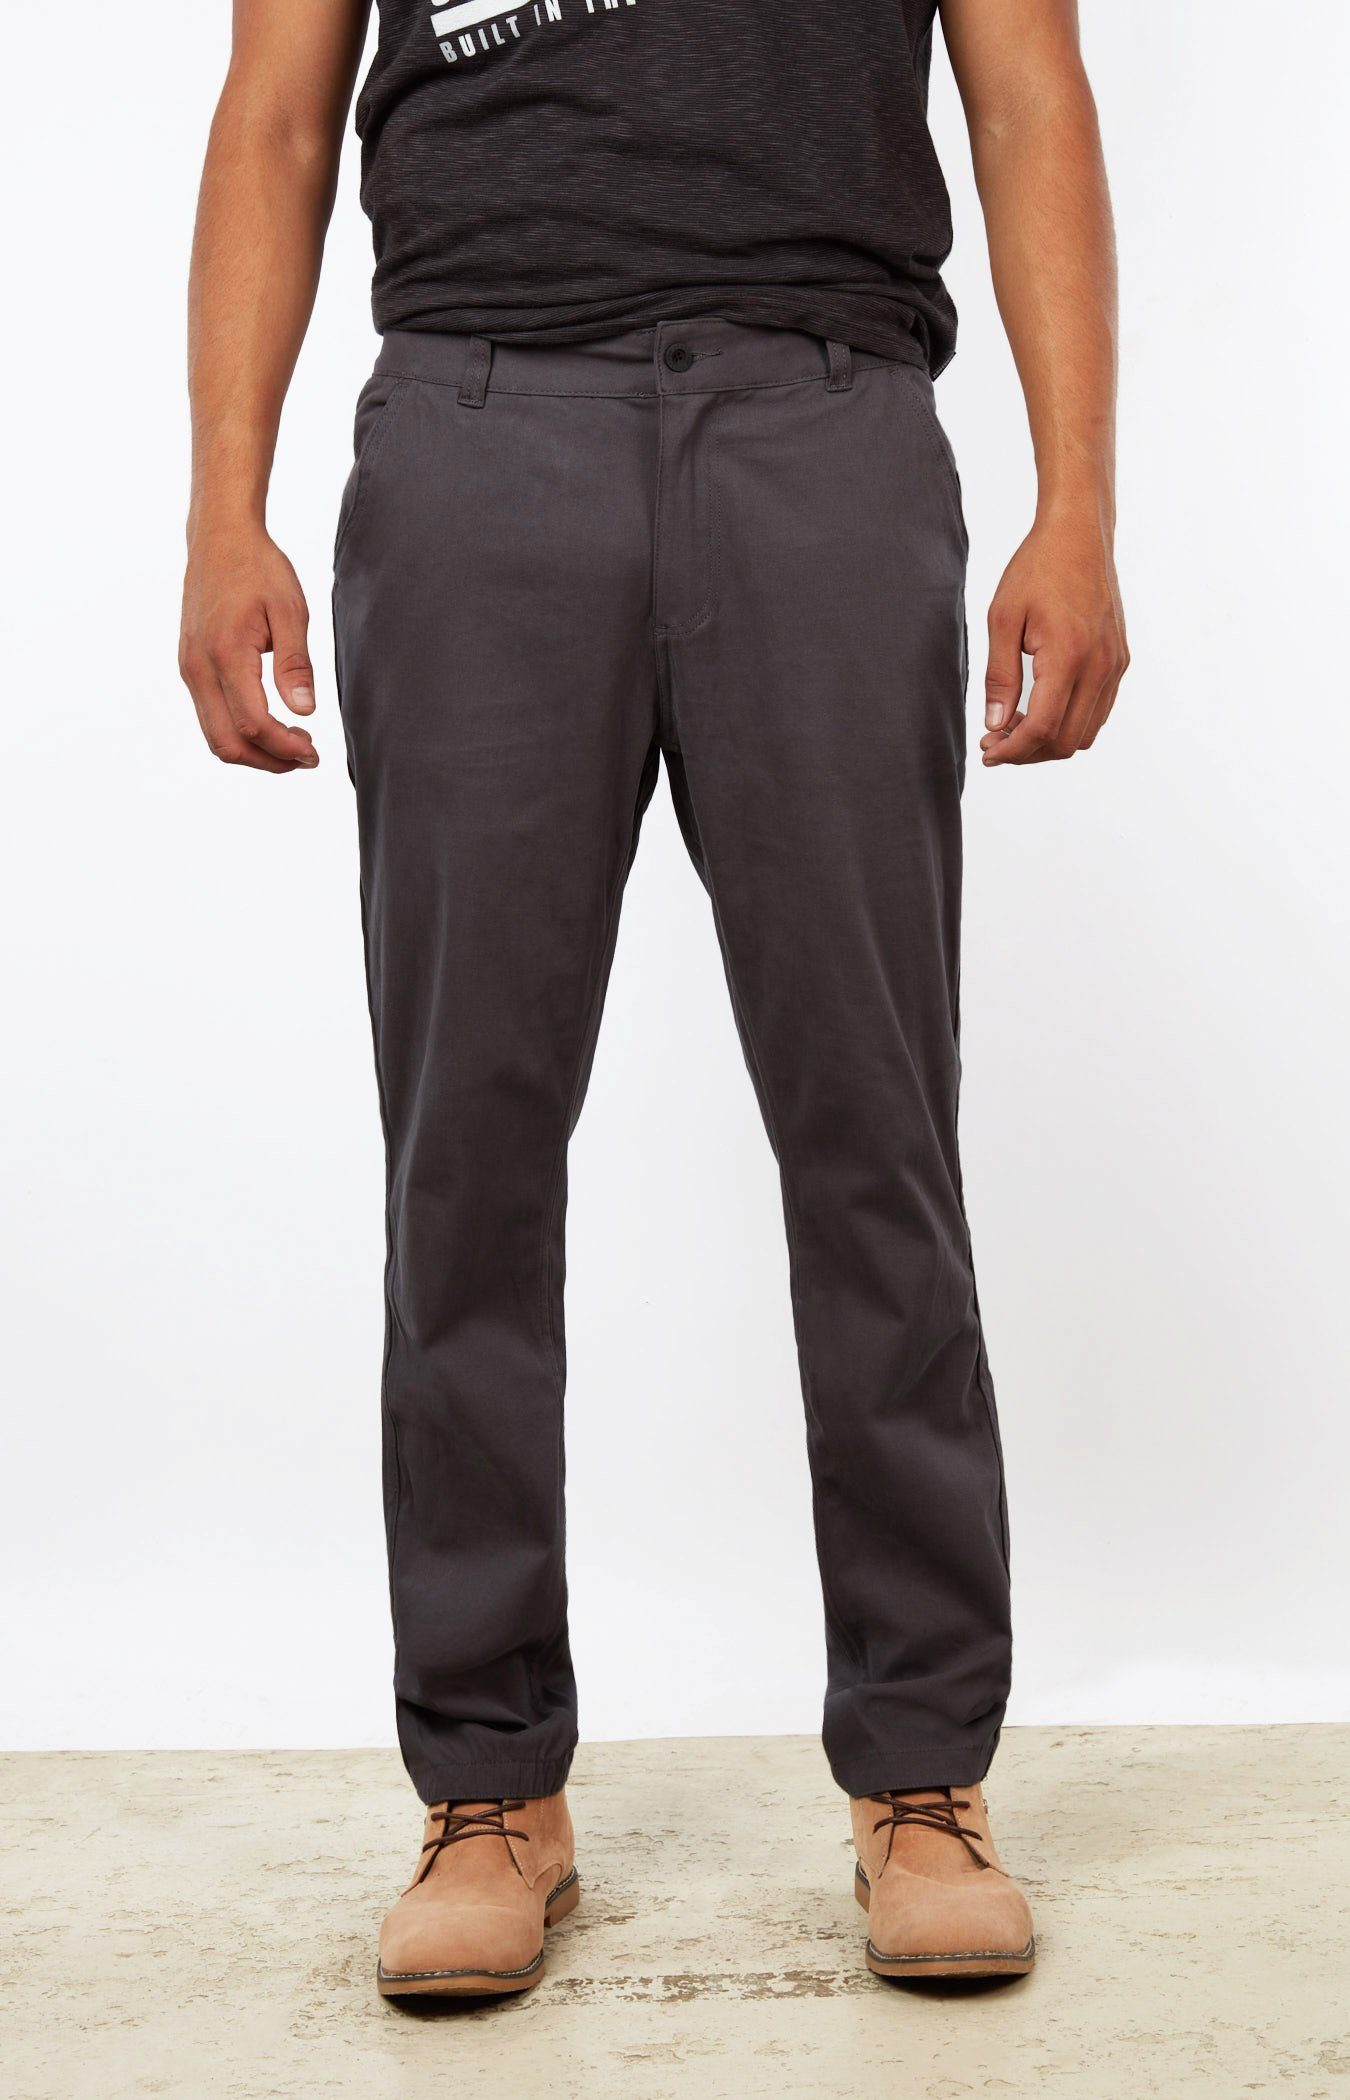 Dark Grey Chinos Jogger Bottom Mens Gongshow Hockey Pants Gongshow